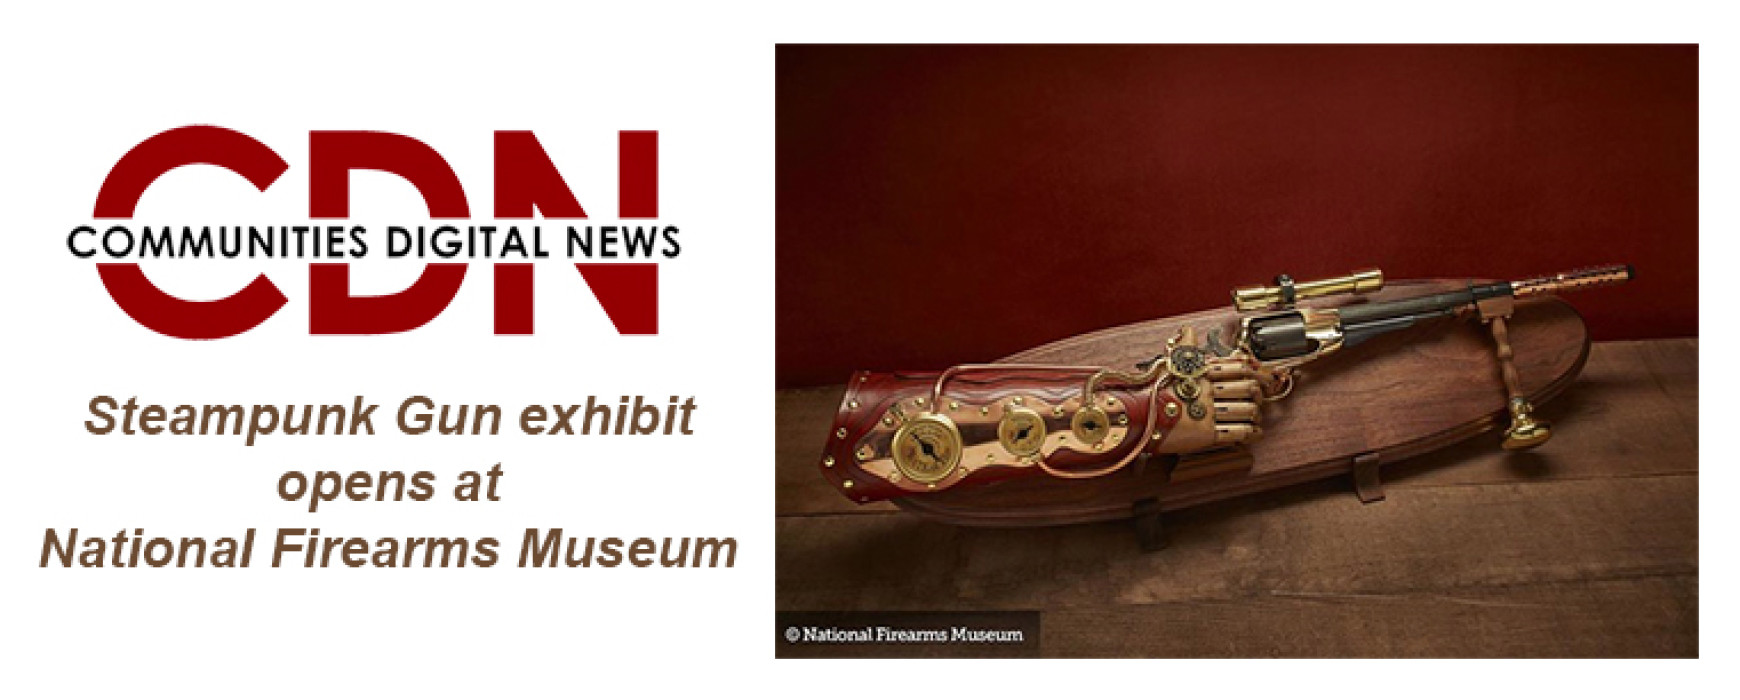 Communities Digital News: Steampunk Gun exhibit opens at National Firearms Museum